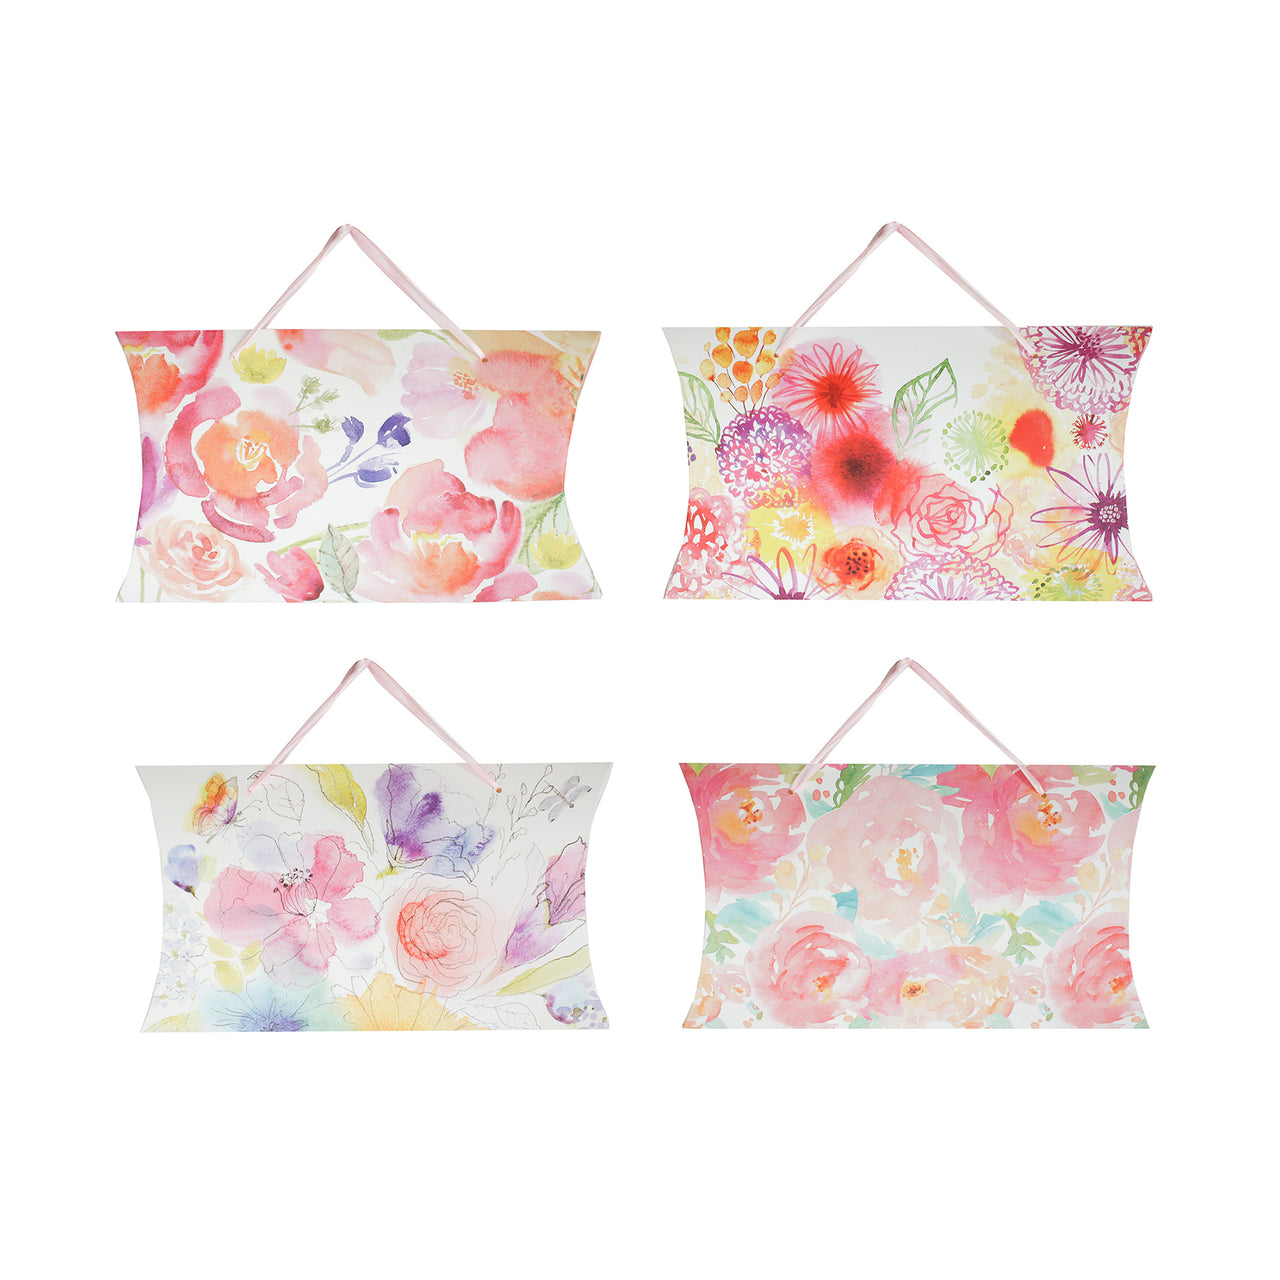 Floral Pillow Gift Bag - Set of 4